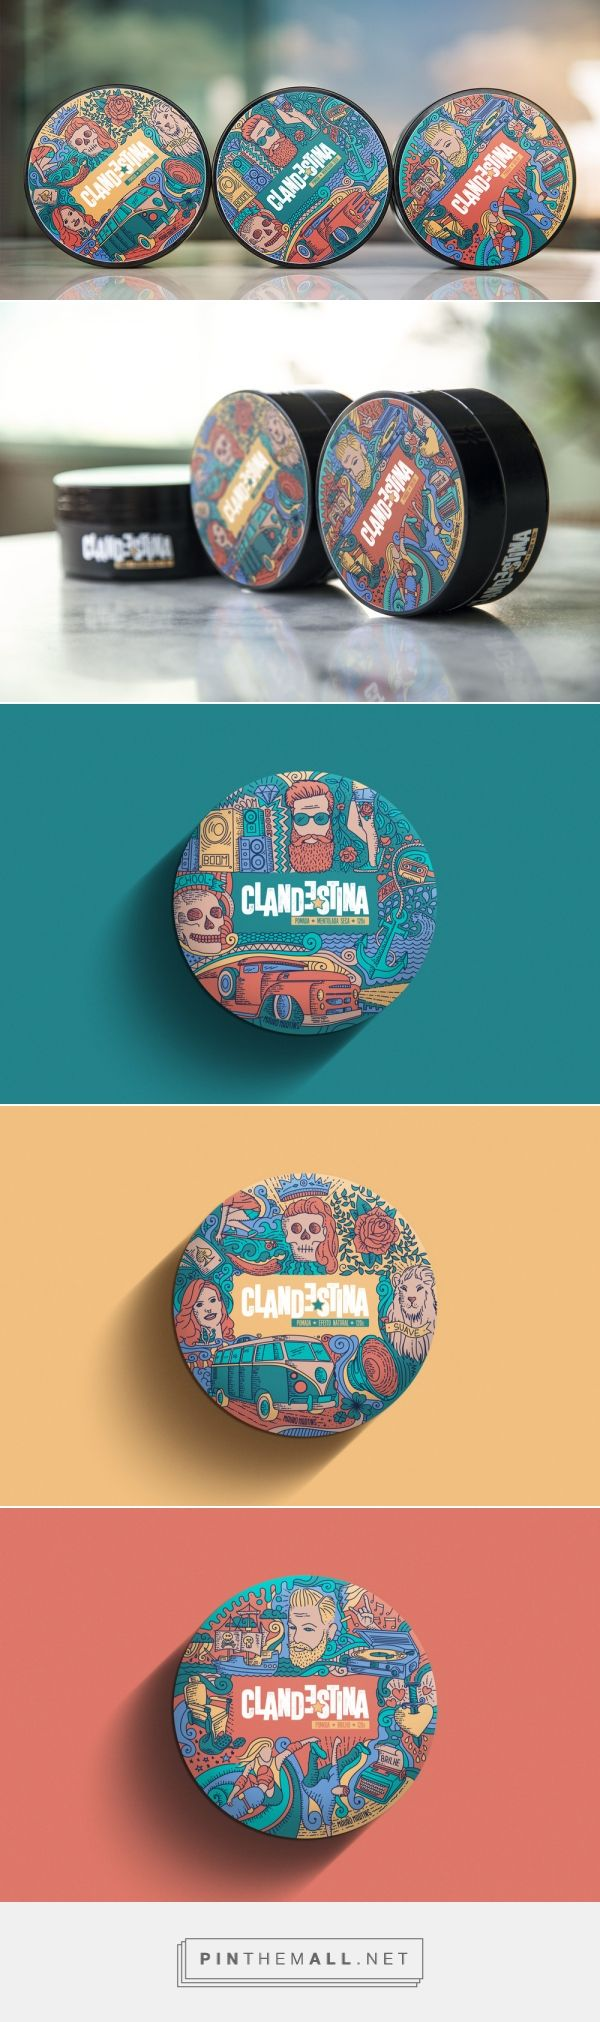 Pin By Dug Dig On Pomade Inspiration Pinterest Packaging Design Oilbased Medium Hold 55gr Non Label And Brand